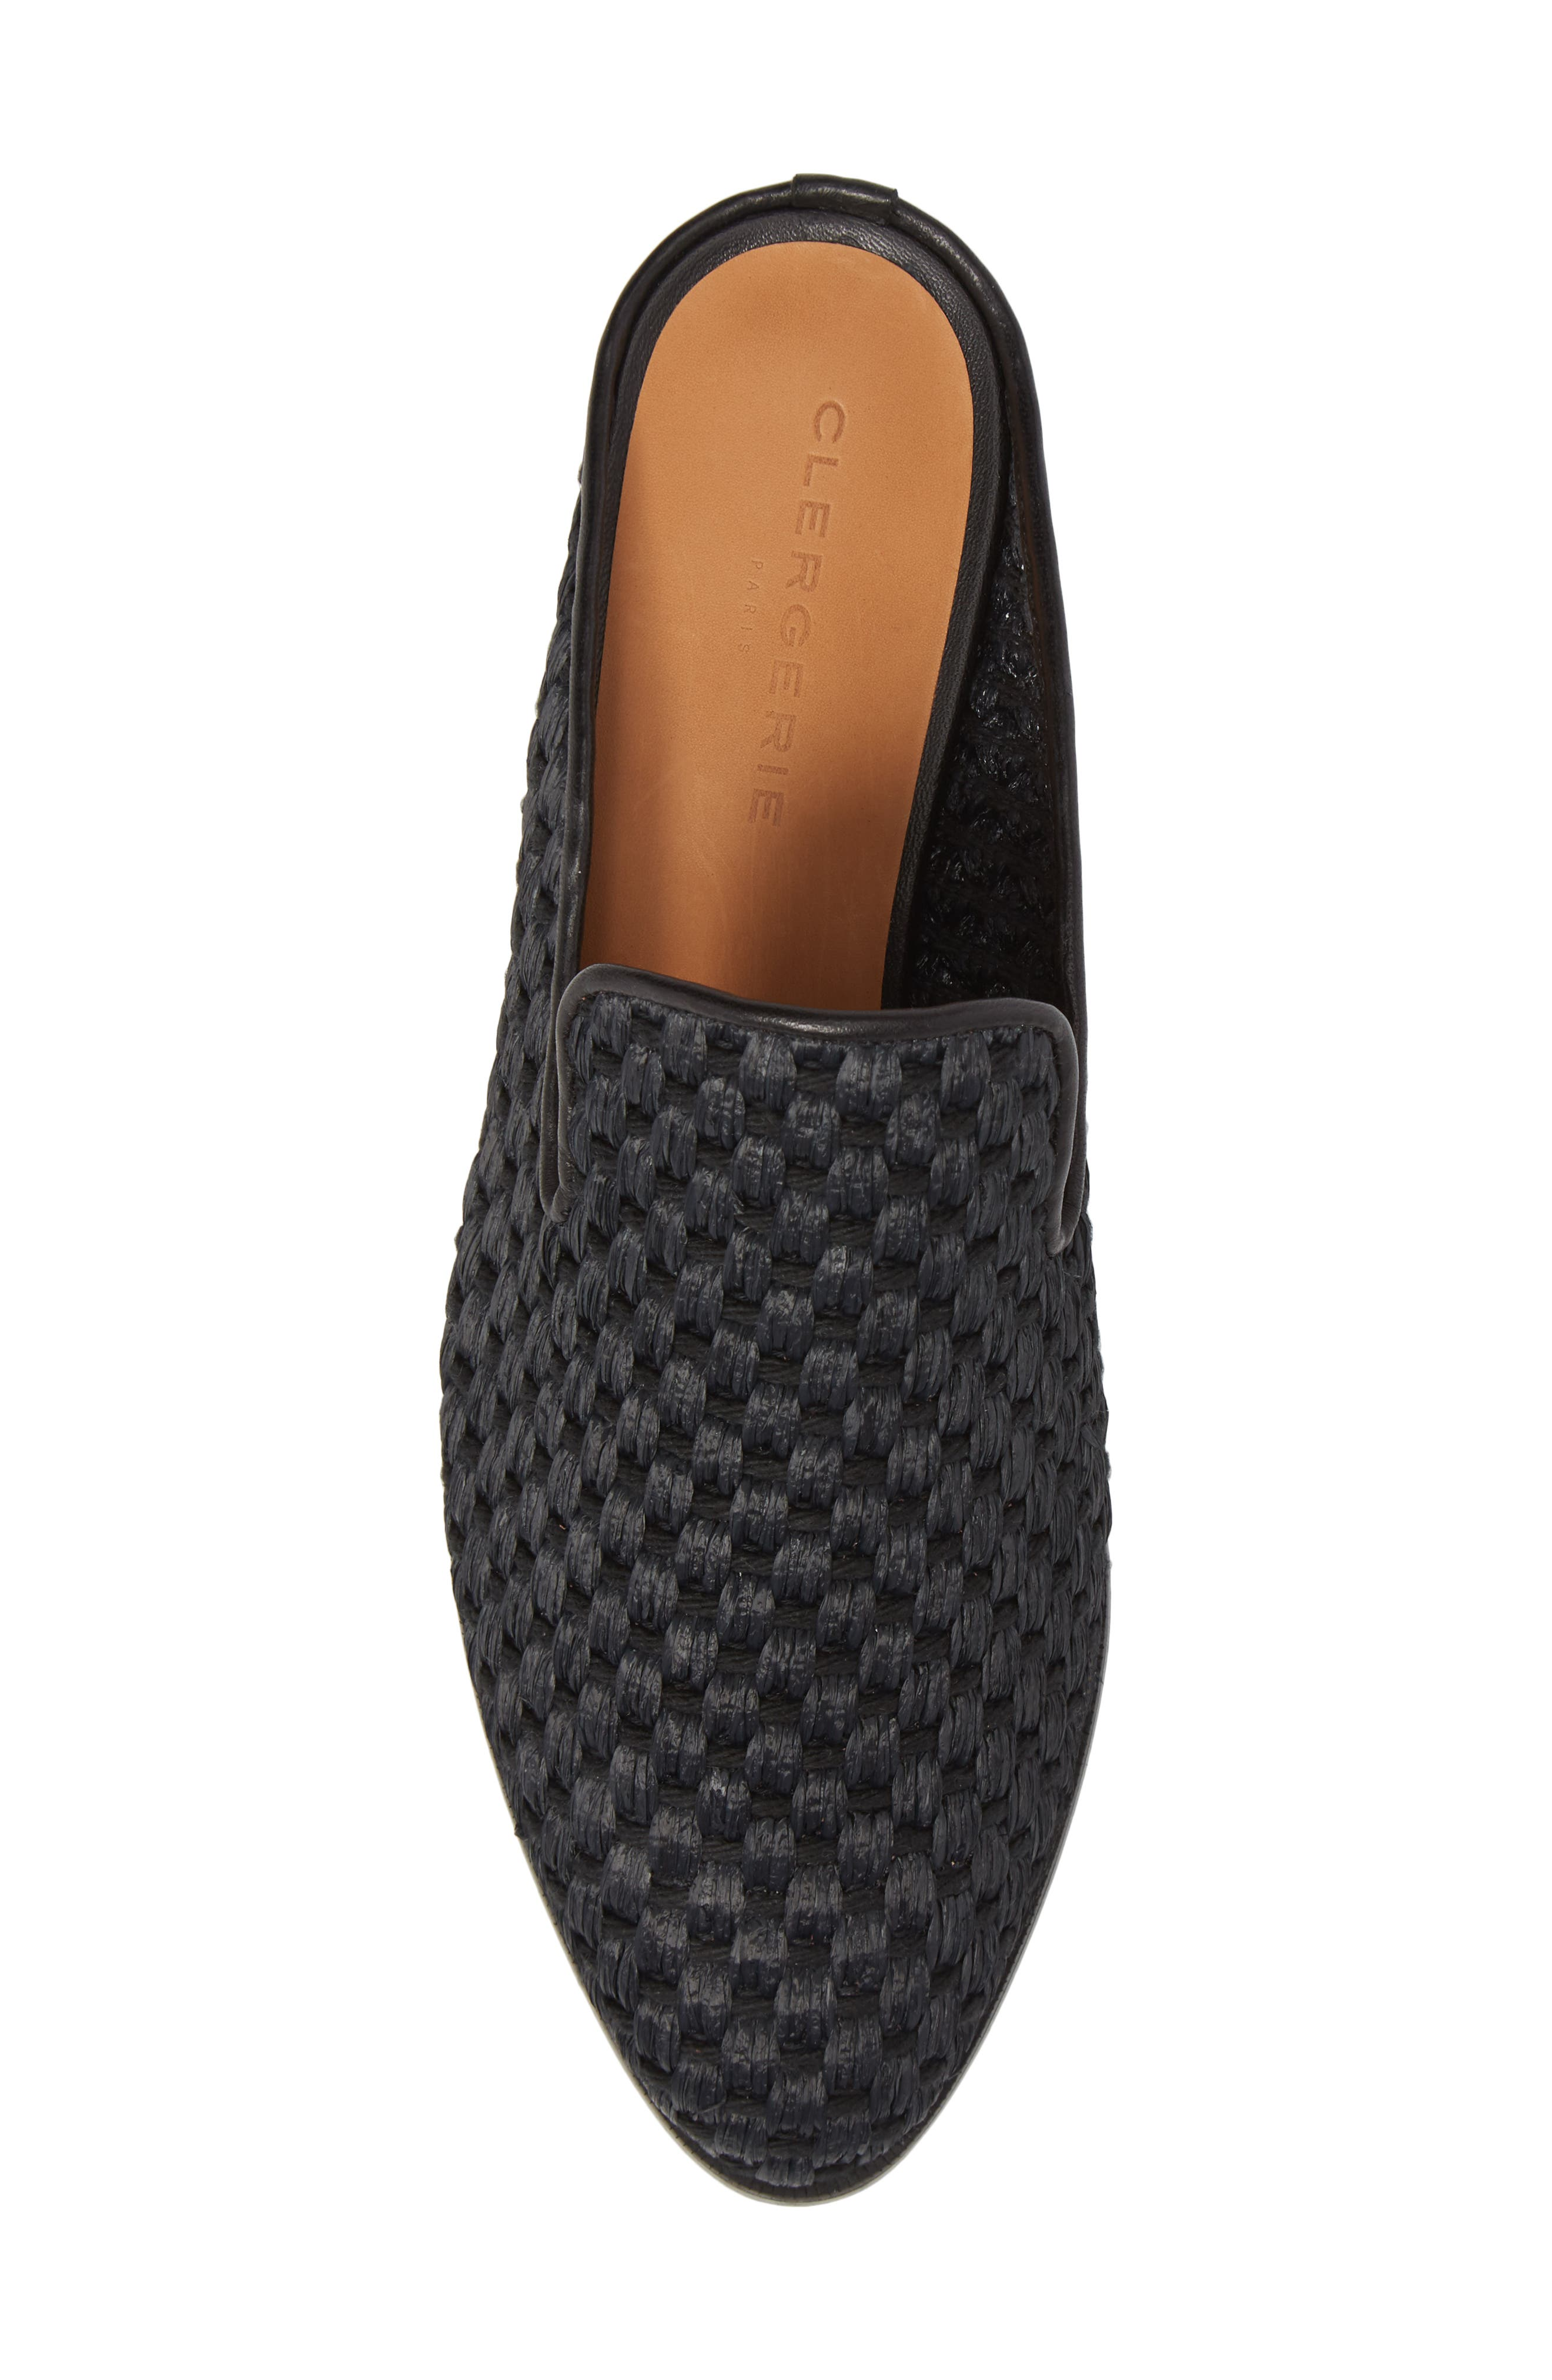 Aliceop Woven Loafer Mule,                             Alternate thumbnail 5, color,                             011